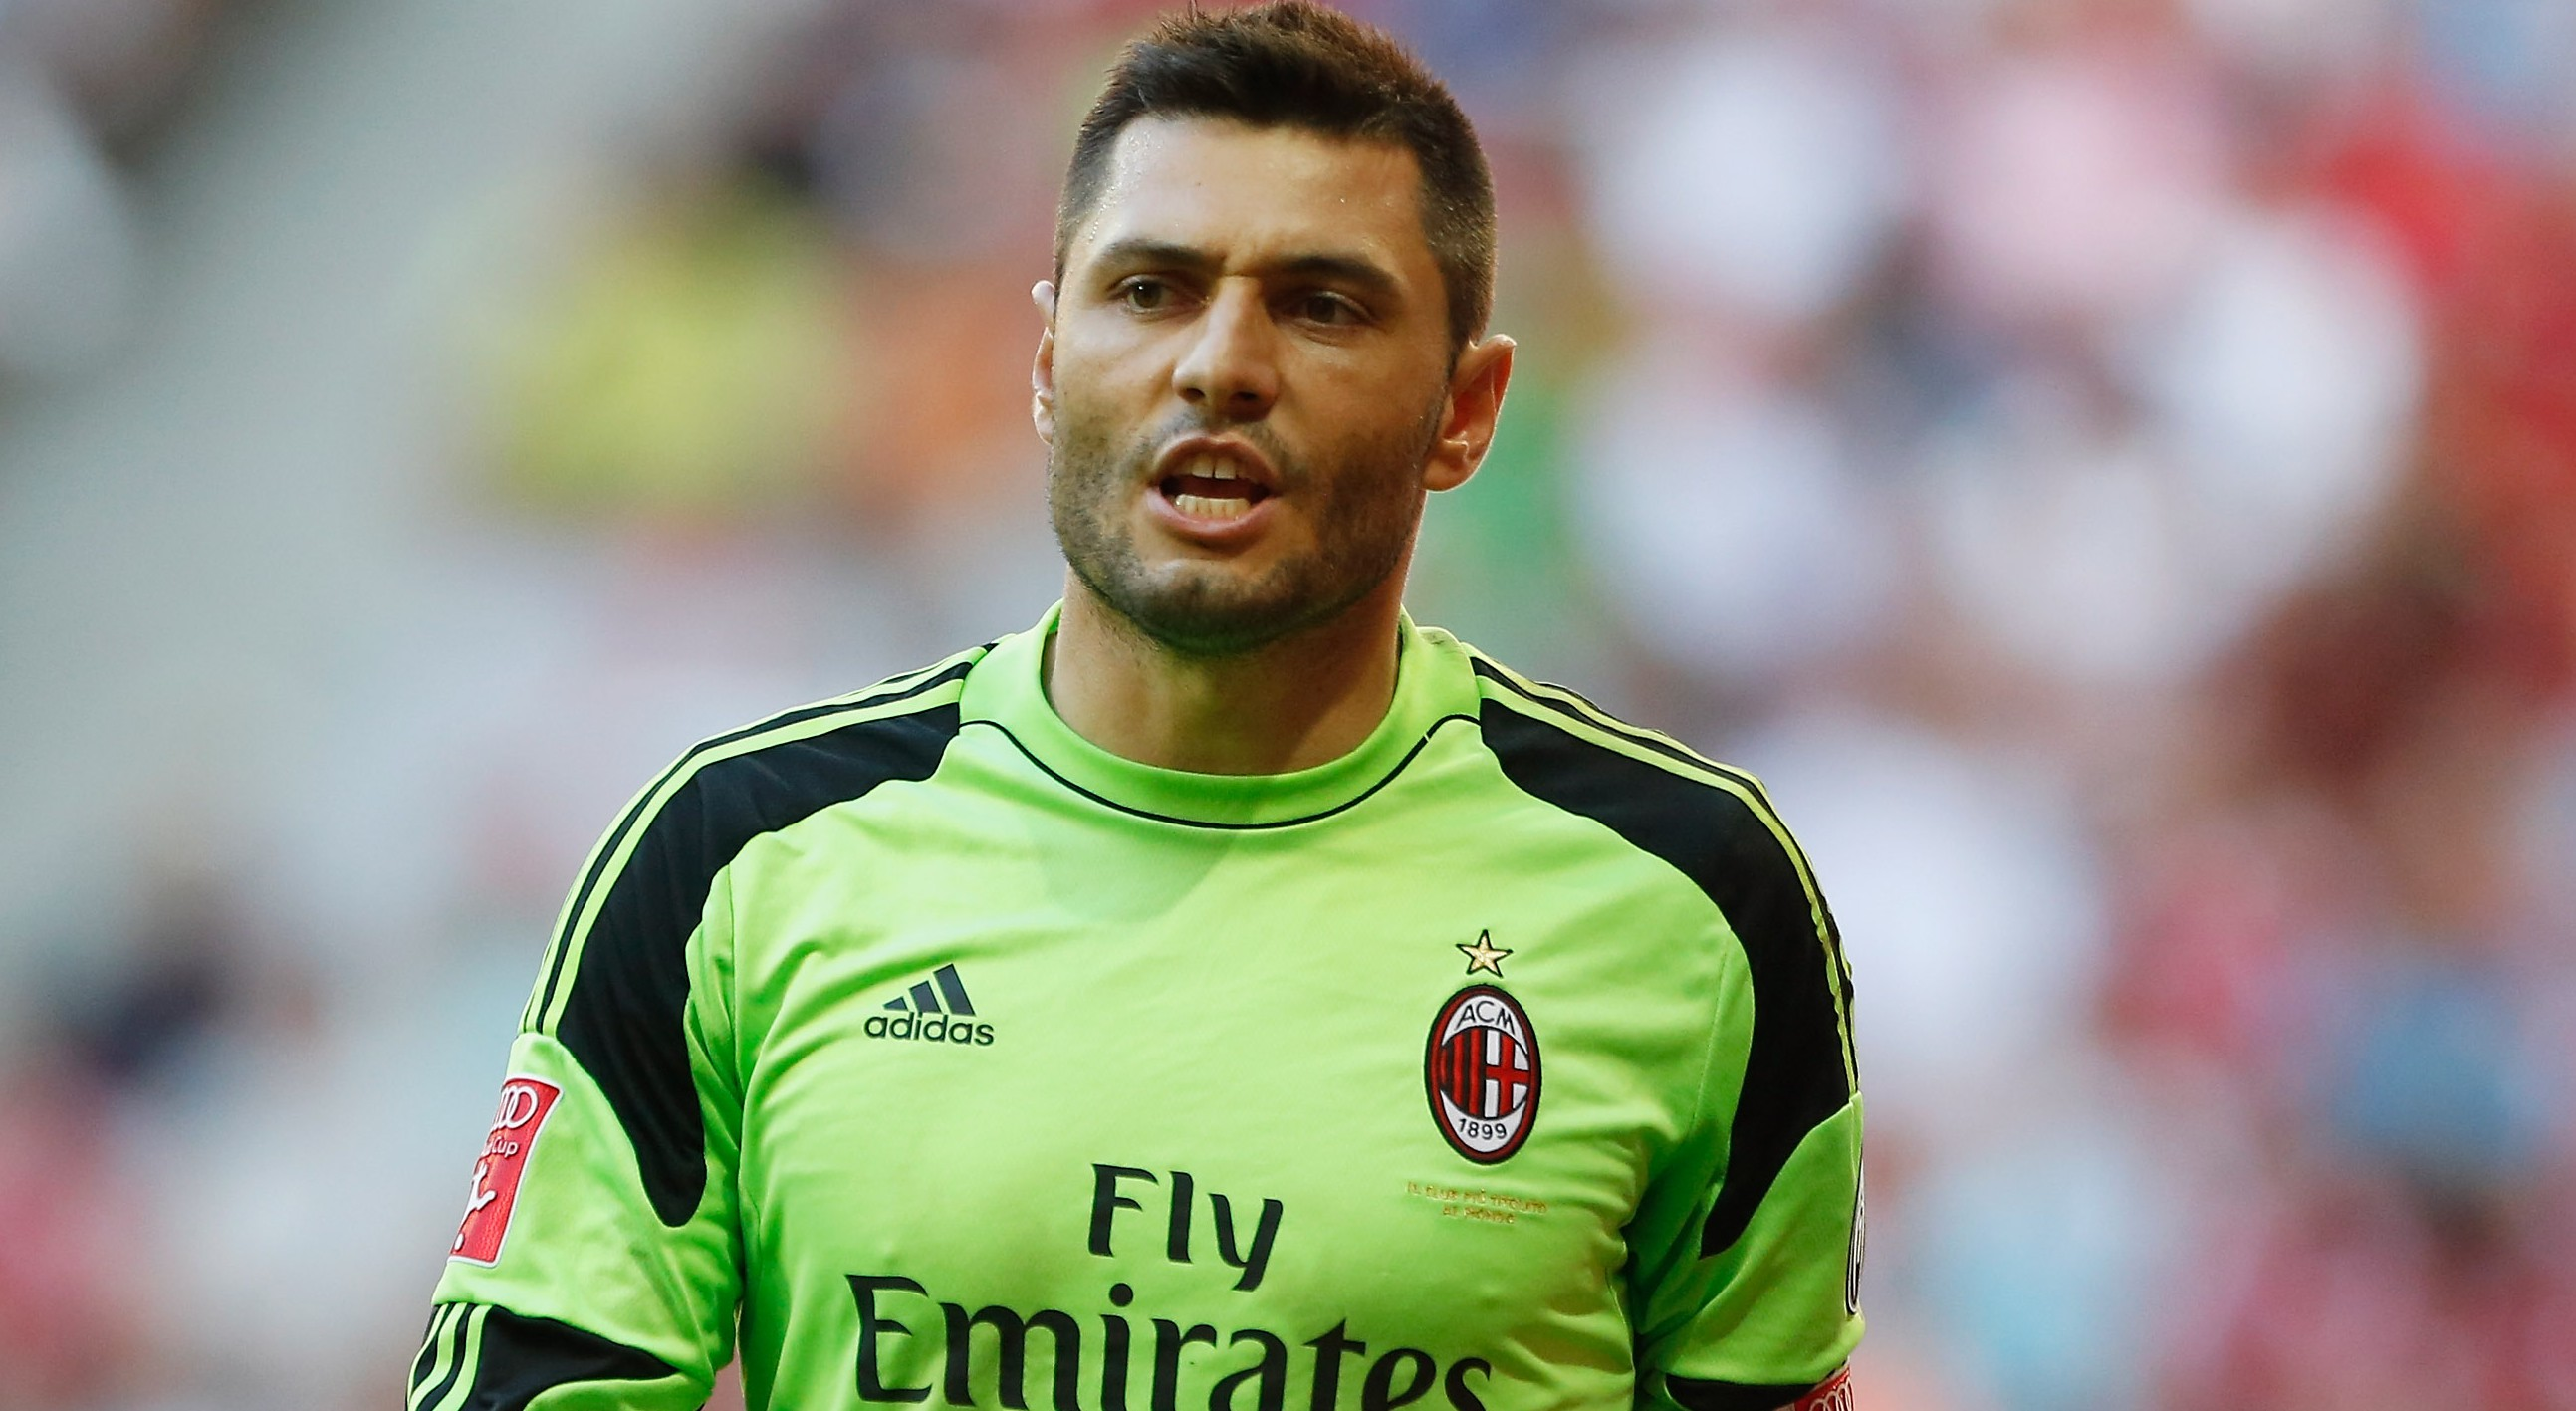 MUNICH, GERMANY - AUGUST 01: Goalkeeper Marco Amelia of Milan reacts during the Audi Cup 2013 third place match between FC Sao Paulo and AC Milan at Allianz Arena on August 1, 2013 in Munich, Germany. (Photo by Boris Streubel/Getty Images)